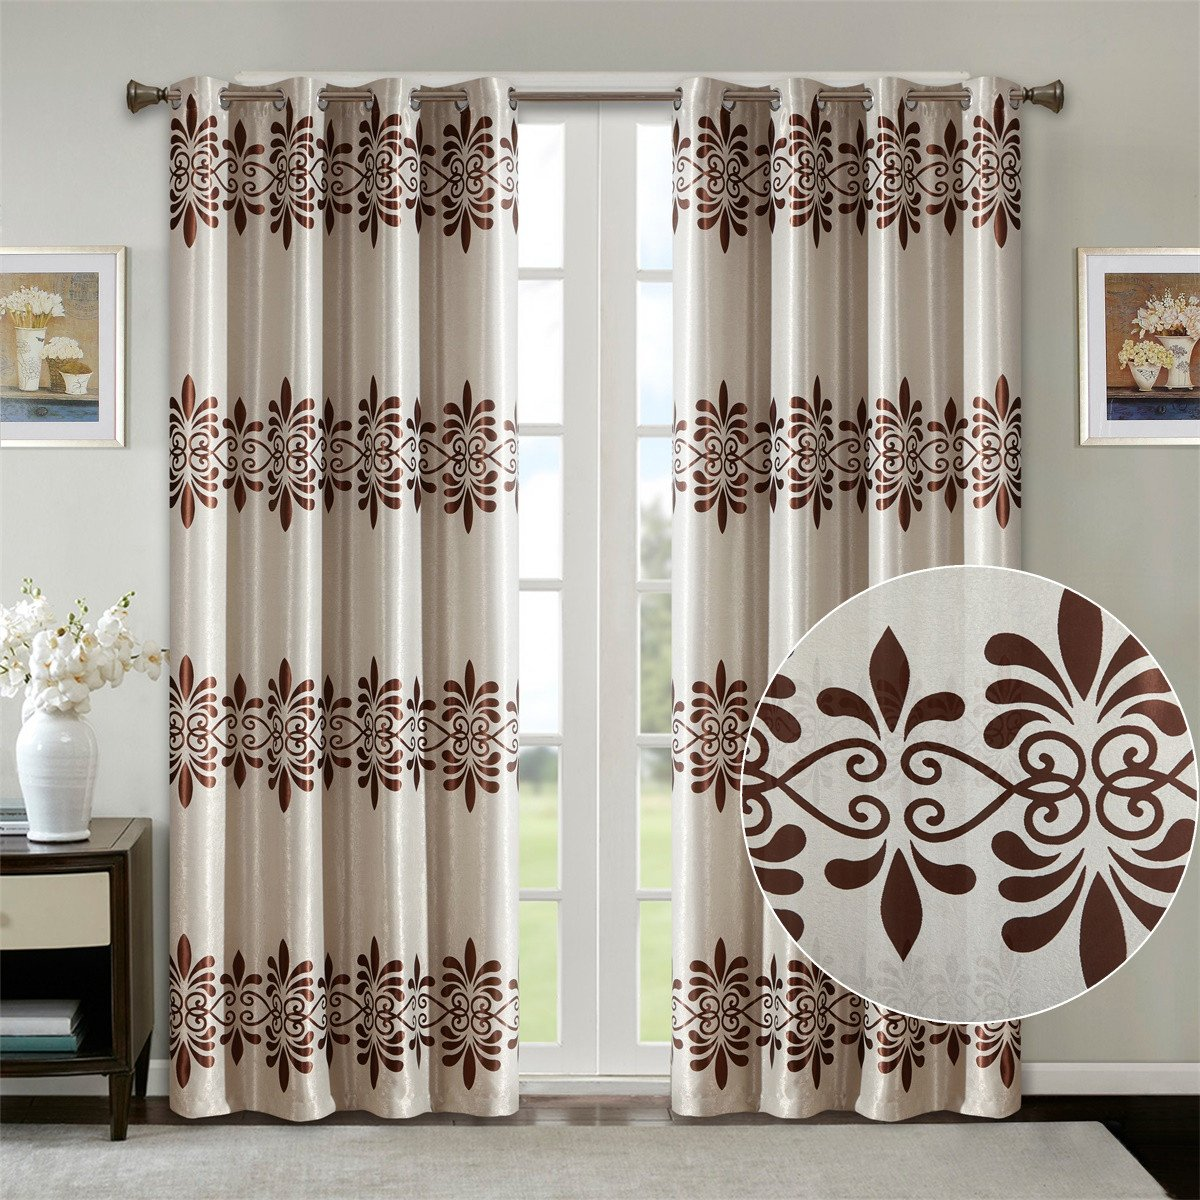 Dreaming Casa Window Blackout Curtains for Living Room, Bedroom 63 Inches Long Grommet/Eyelet Room Darkening Drapes European Pattern 2 Panels (White, 72'' Wx 84'' L)